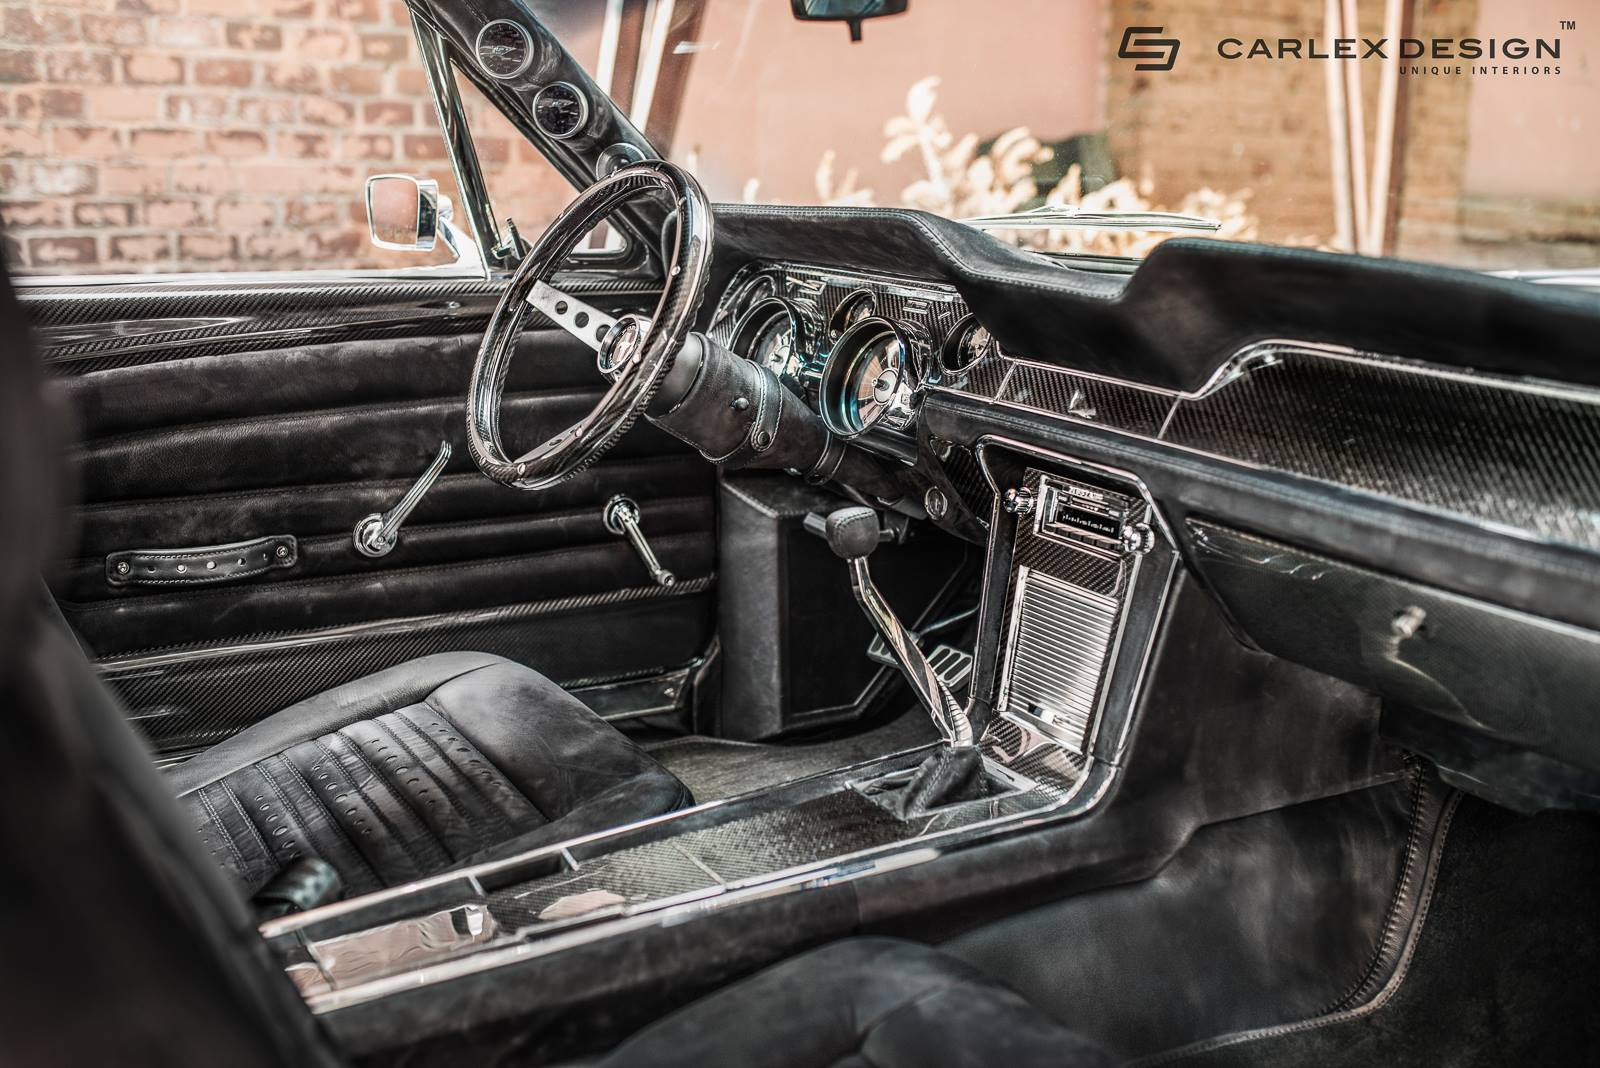 2008 Ford F150 For Sale >> 1967 Ford Mustang by Carlex Has Carbon Fiber and Alcantara Interior - autoevolution